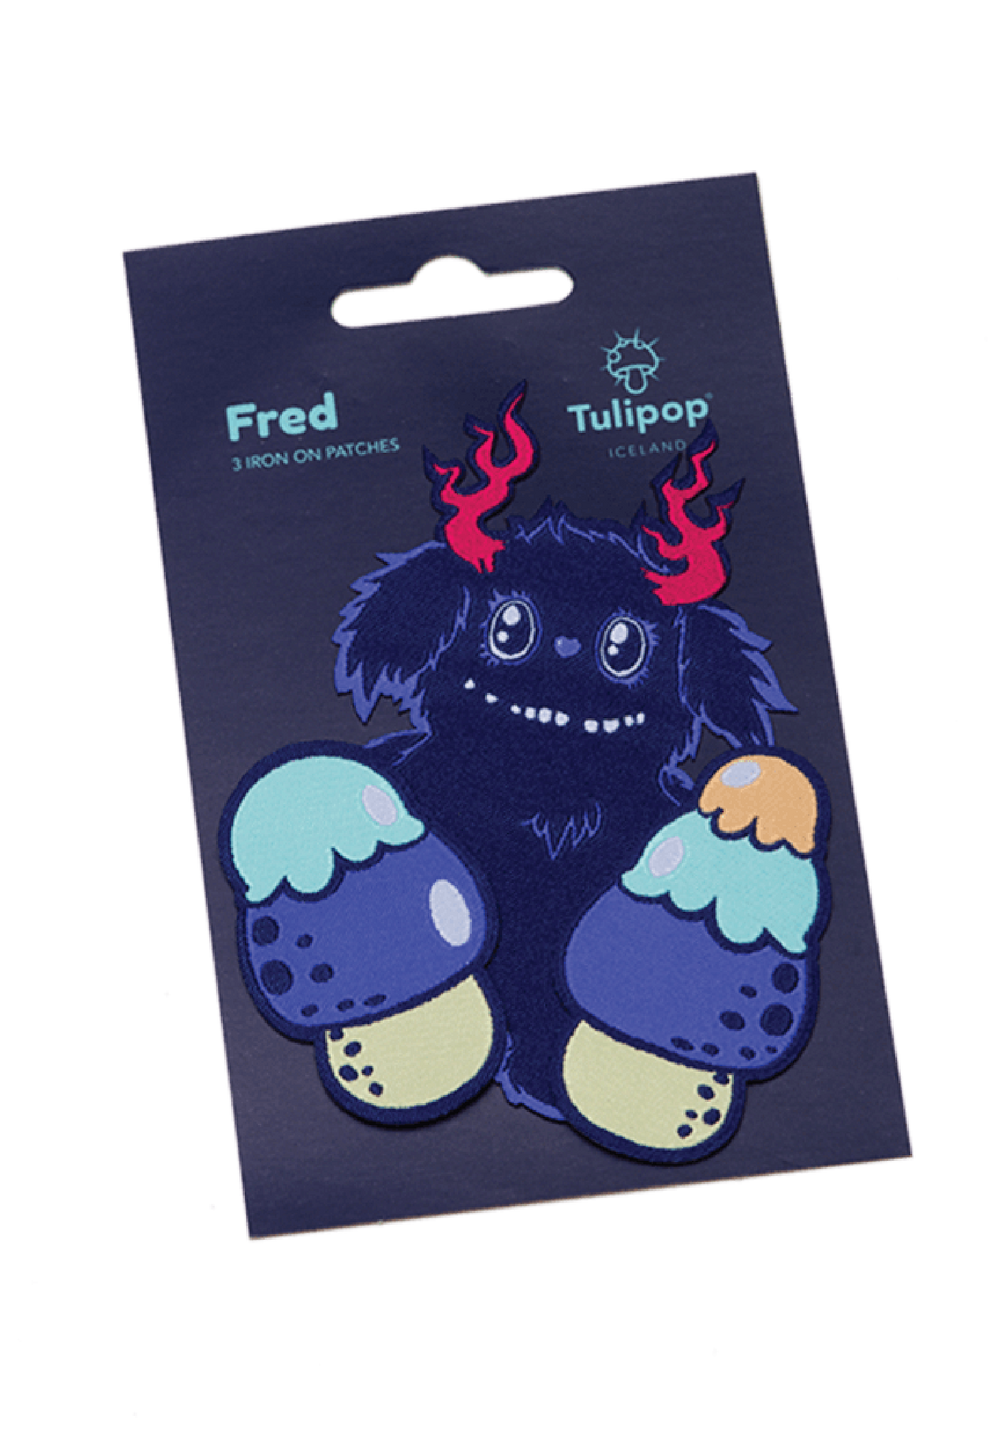 Fred Patches